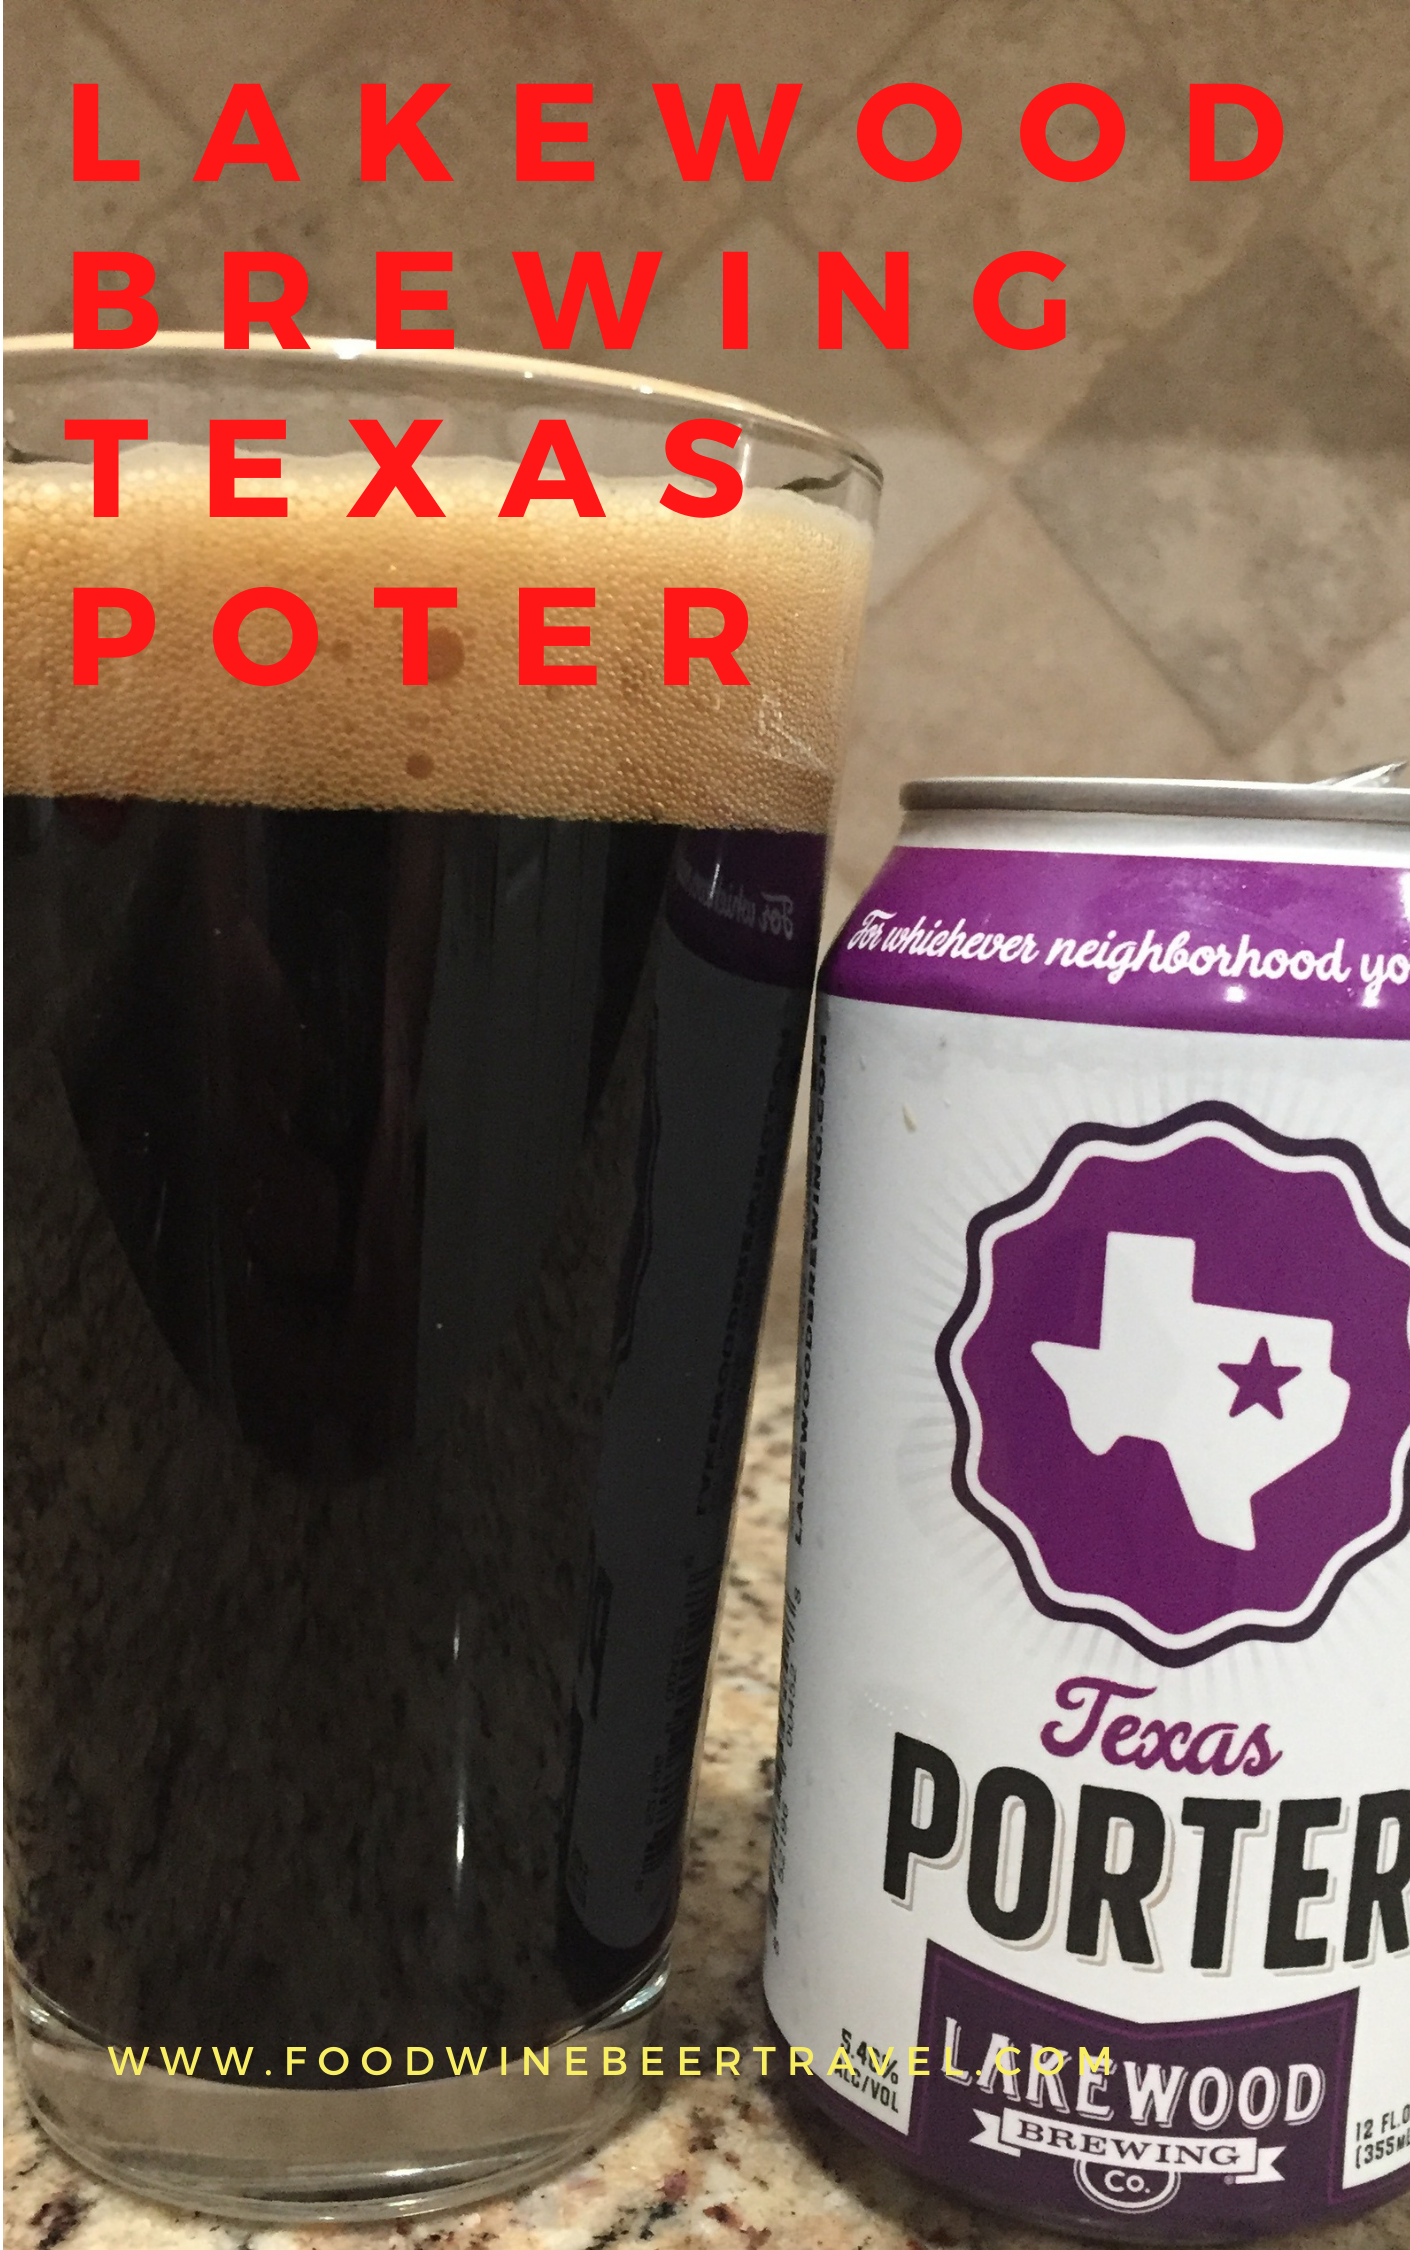 A Pinterest pin of a can of Texas Porter, from Lakewood Brewing, is next to a pint glass filled with a Dark beer with a thick cream head floating on top.